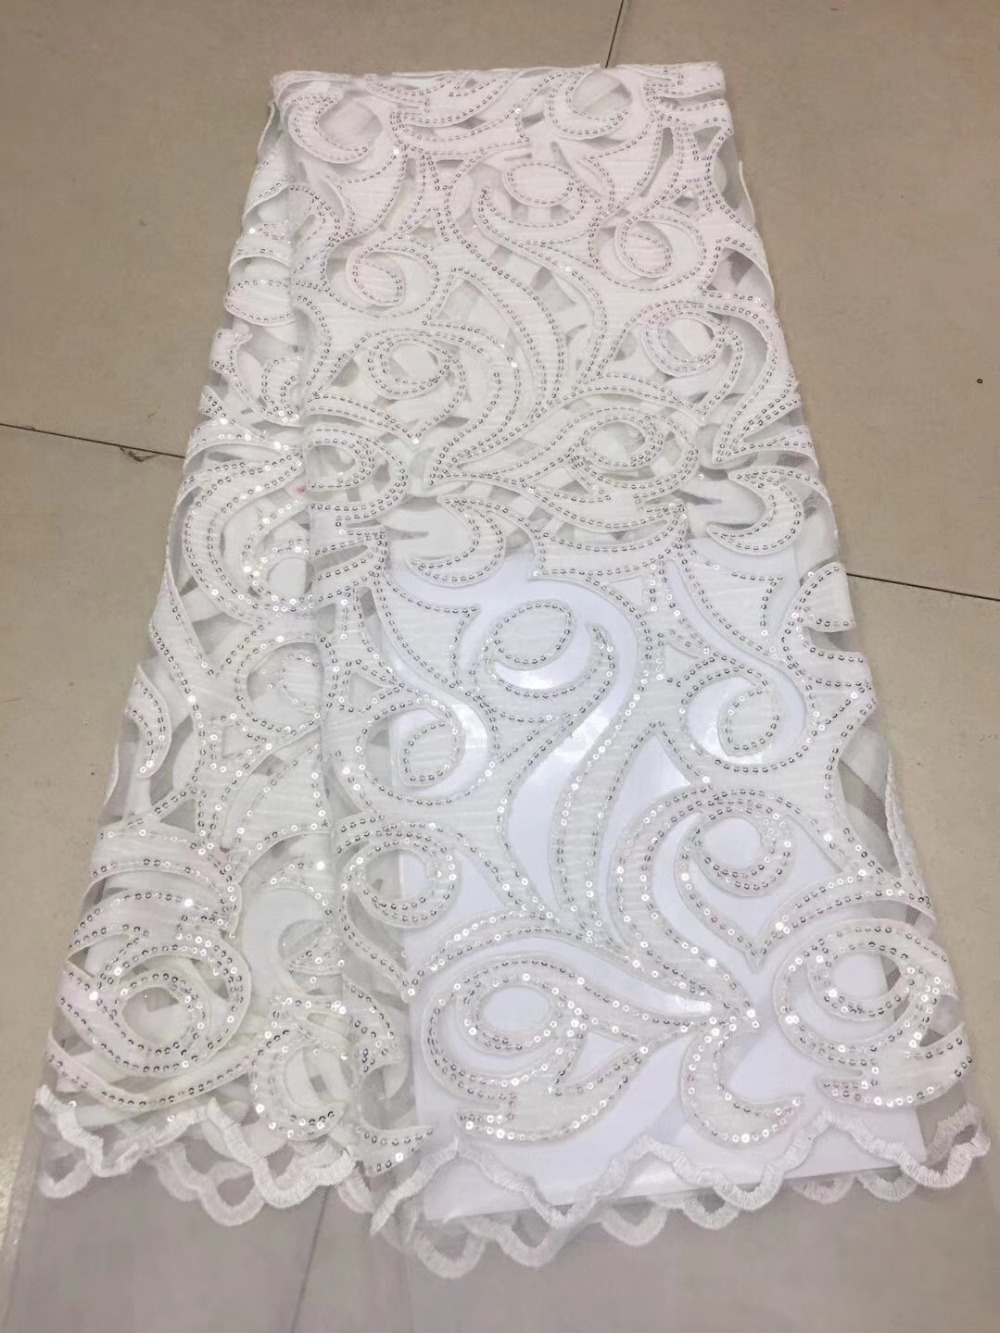 New French Nigerian sequins net lace African velvet tulle mesh Sequence lace fabric high quality for